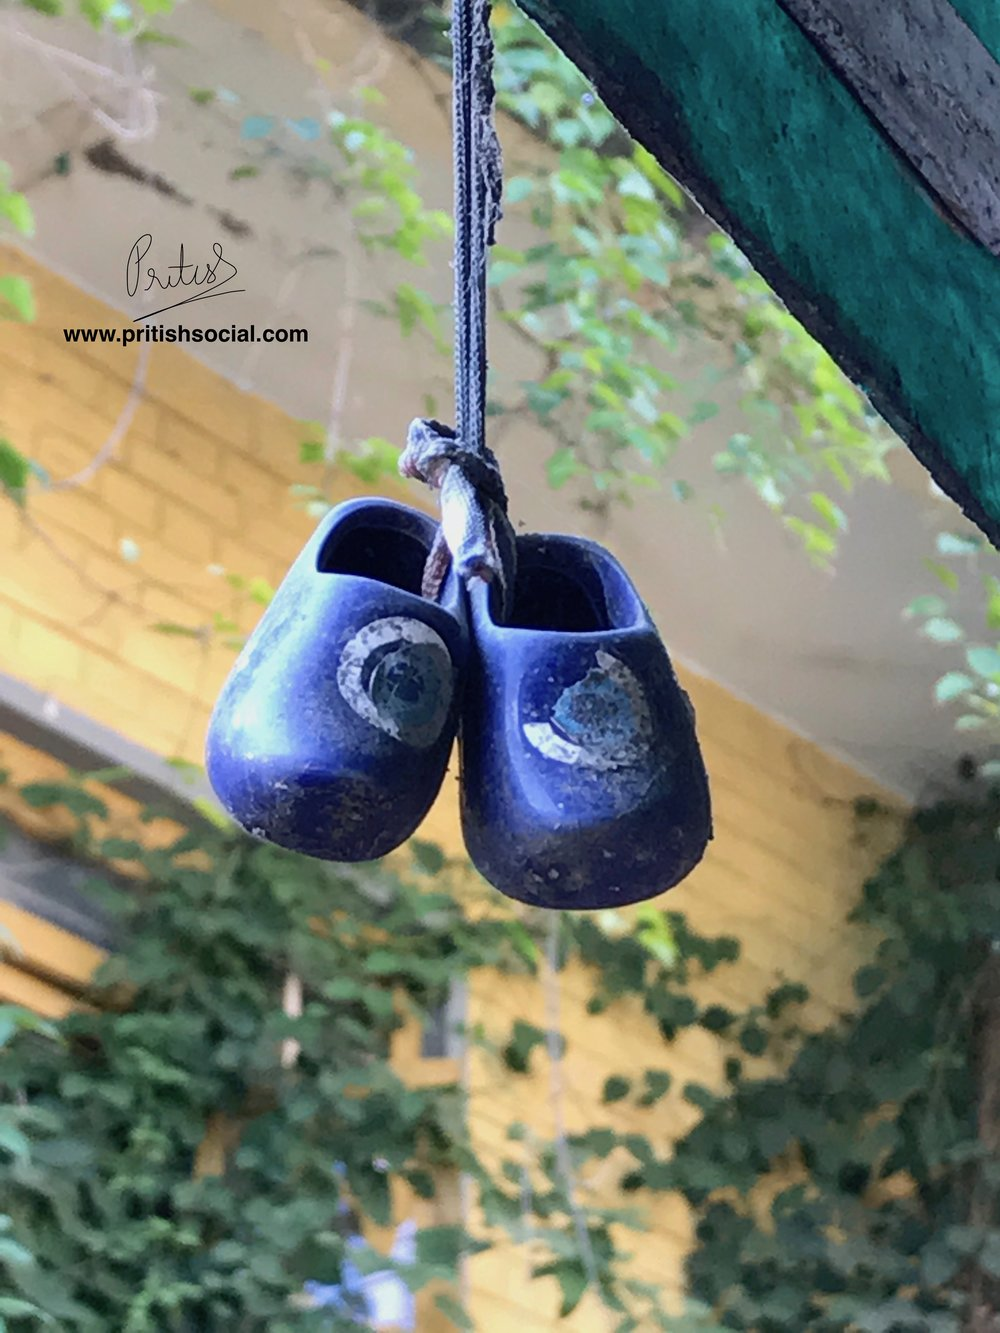 Cute little shoes hung outside the kitchen